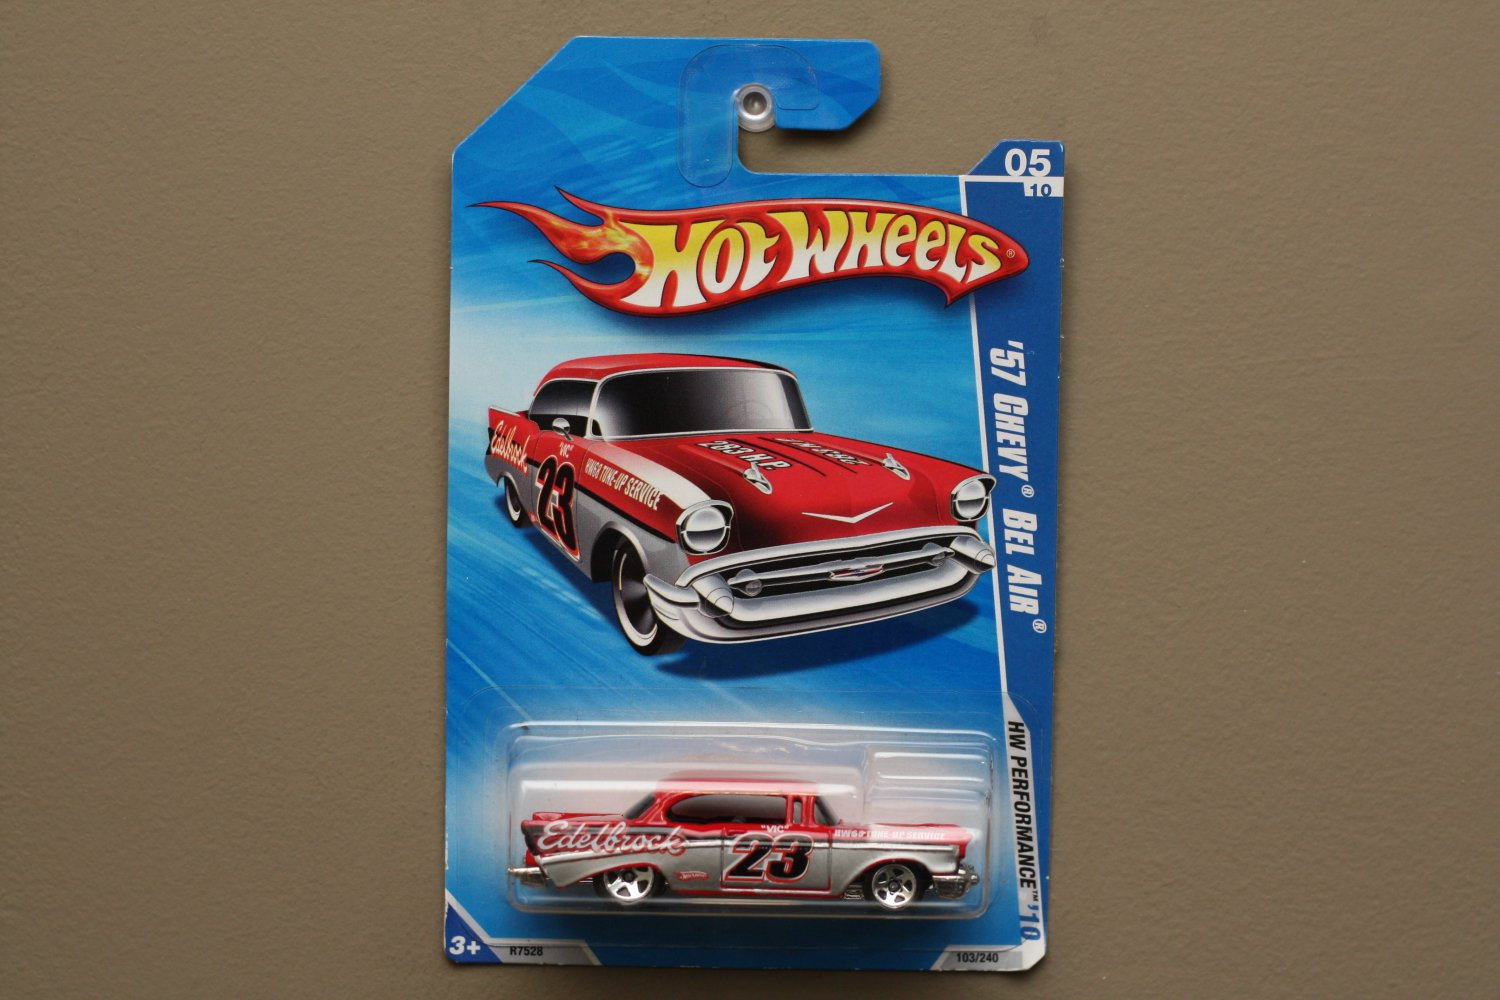 Hot Wheels 2010 HW Performance '57 Chevy Bel Air (red - Kmart Excl.)